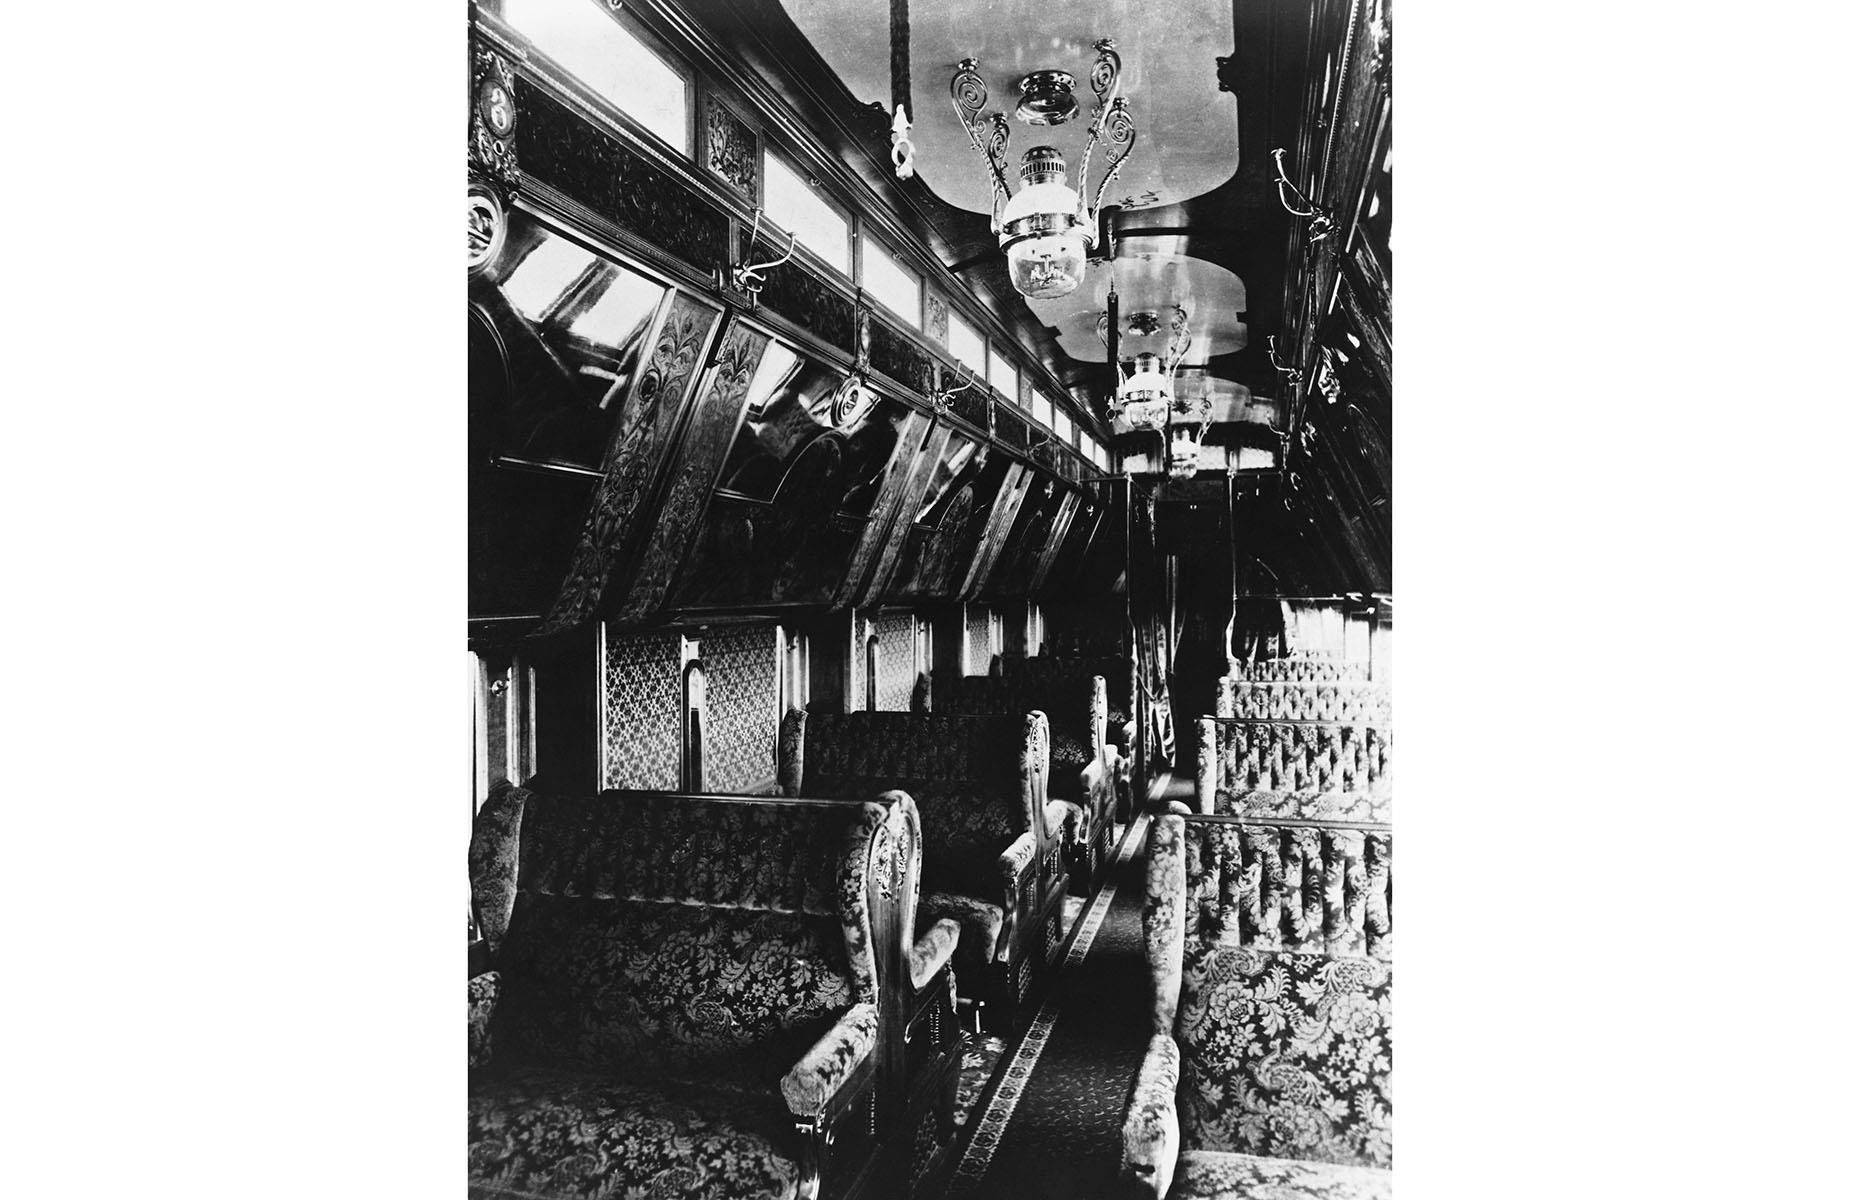 Slide 4 of 32: Before the turn of the 20th century, rail travel was expensive, especially in America, but Chicago-based Pullman Company, led by George Pullman found a way to make it even more luxurious. Founded in 1867, the company produced a range of ornate dining, sleeping and parlor cars and even private cars for the super wealthy. These cars would be attached to commercial passenger trains and were essentially mini mansions on wheels.